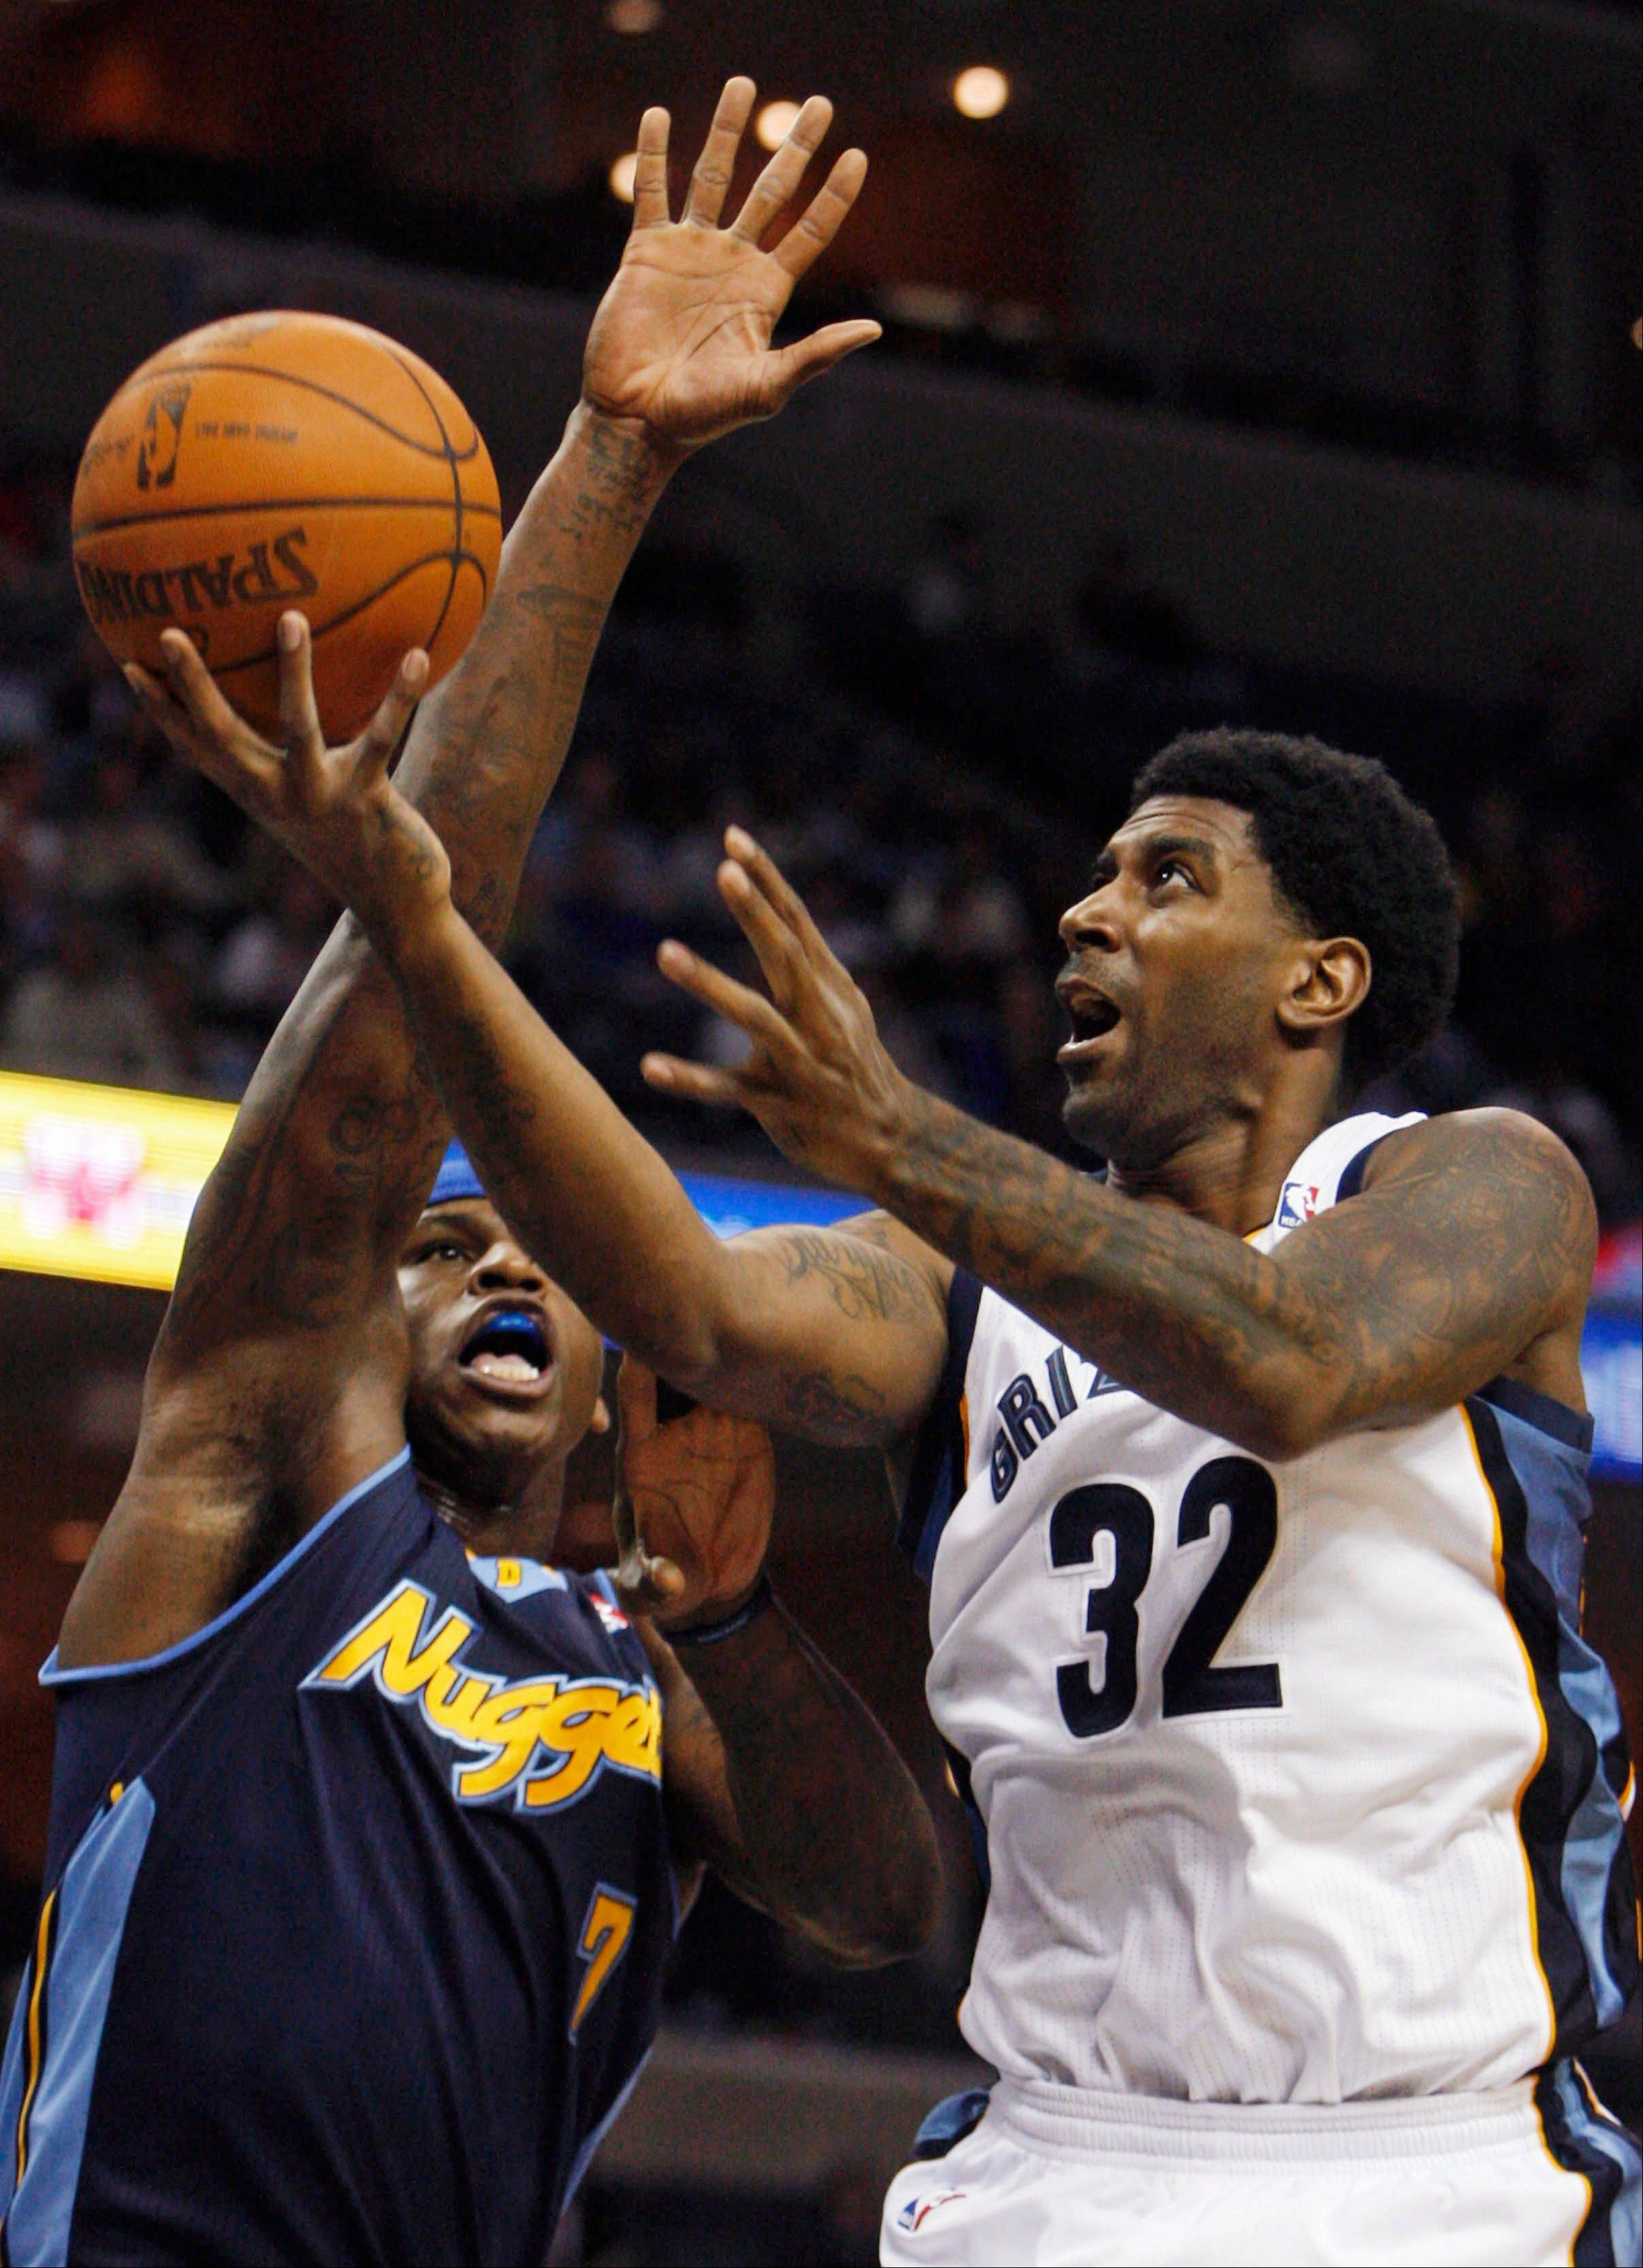 Memphis Grizzlies guard O.J. Mayo (32) heads to the basket as Denver Nuggets forward Al Harrington (7) defends in the second half of an NBA basketball game Tuesday, Jan. 31, 2012, in Memphis, Tenn. The Grizzlies won in overtime 100-97.